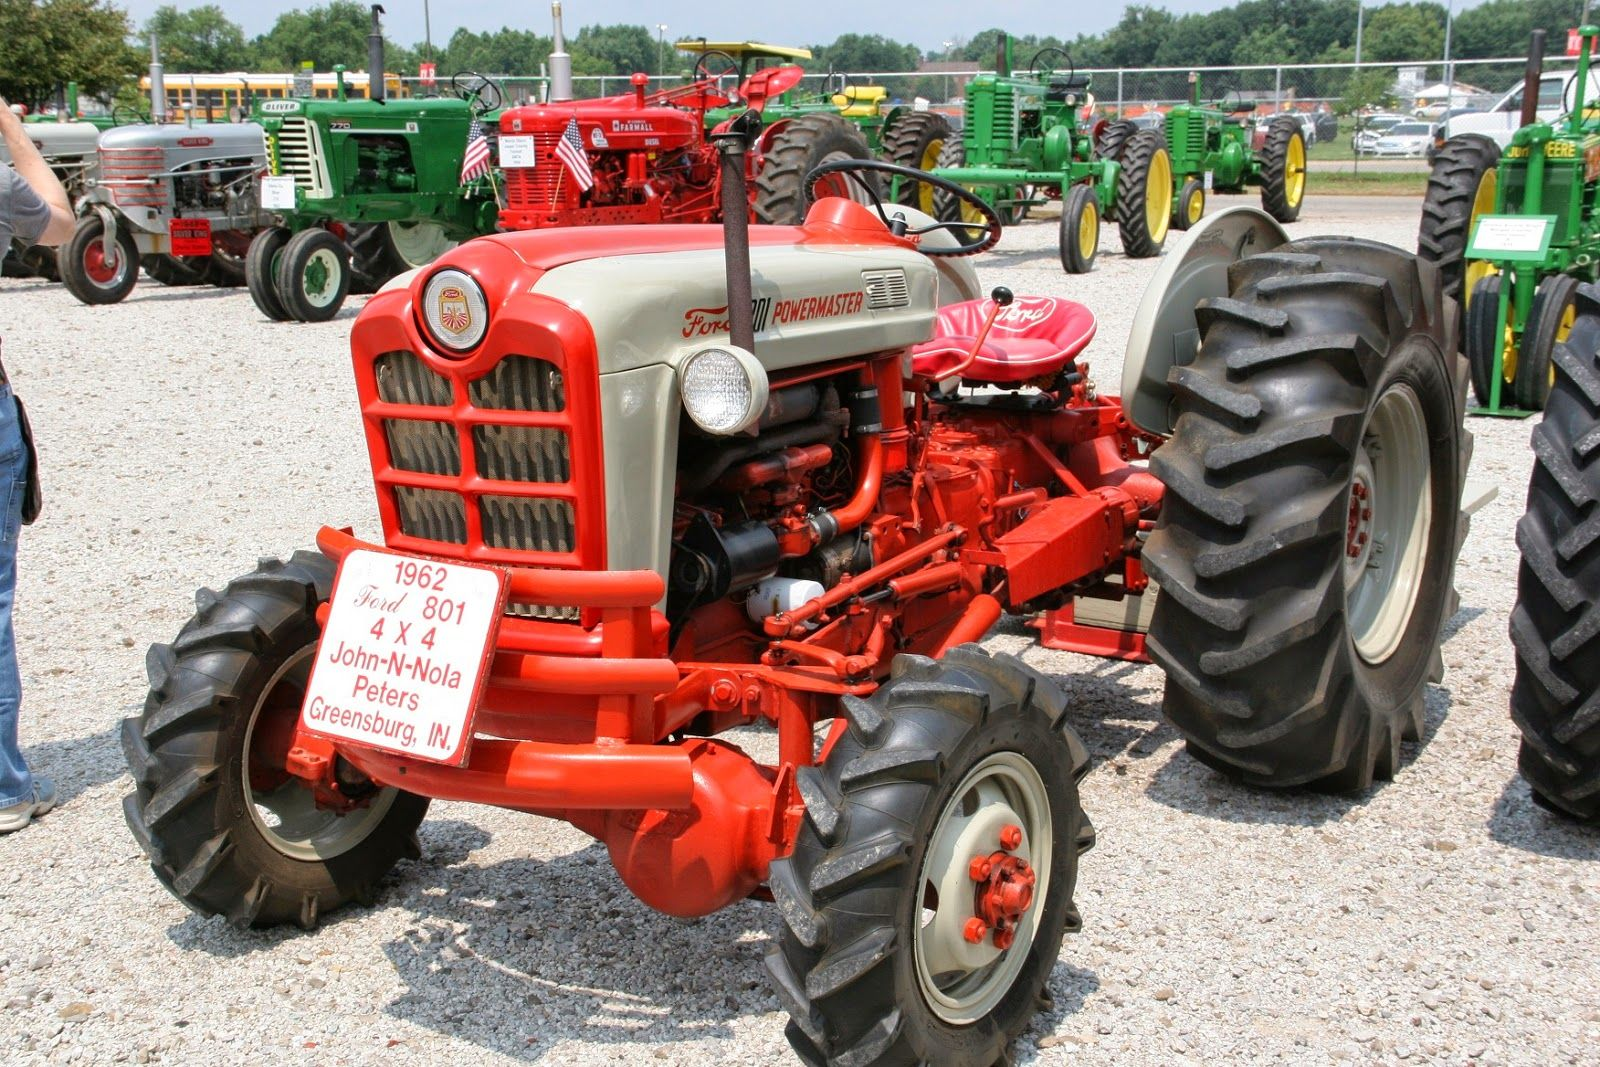 Ford powermaster tractor still got them curves cool jpg 1600x1067 1957 ford 801  tractor